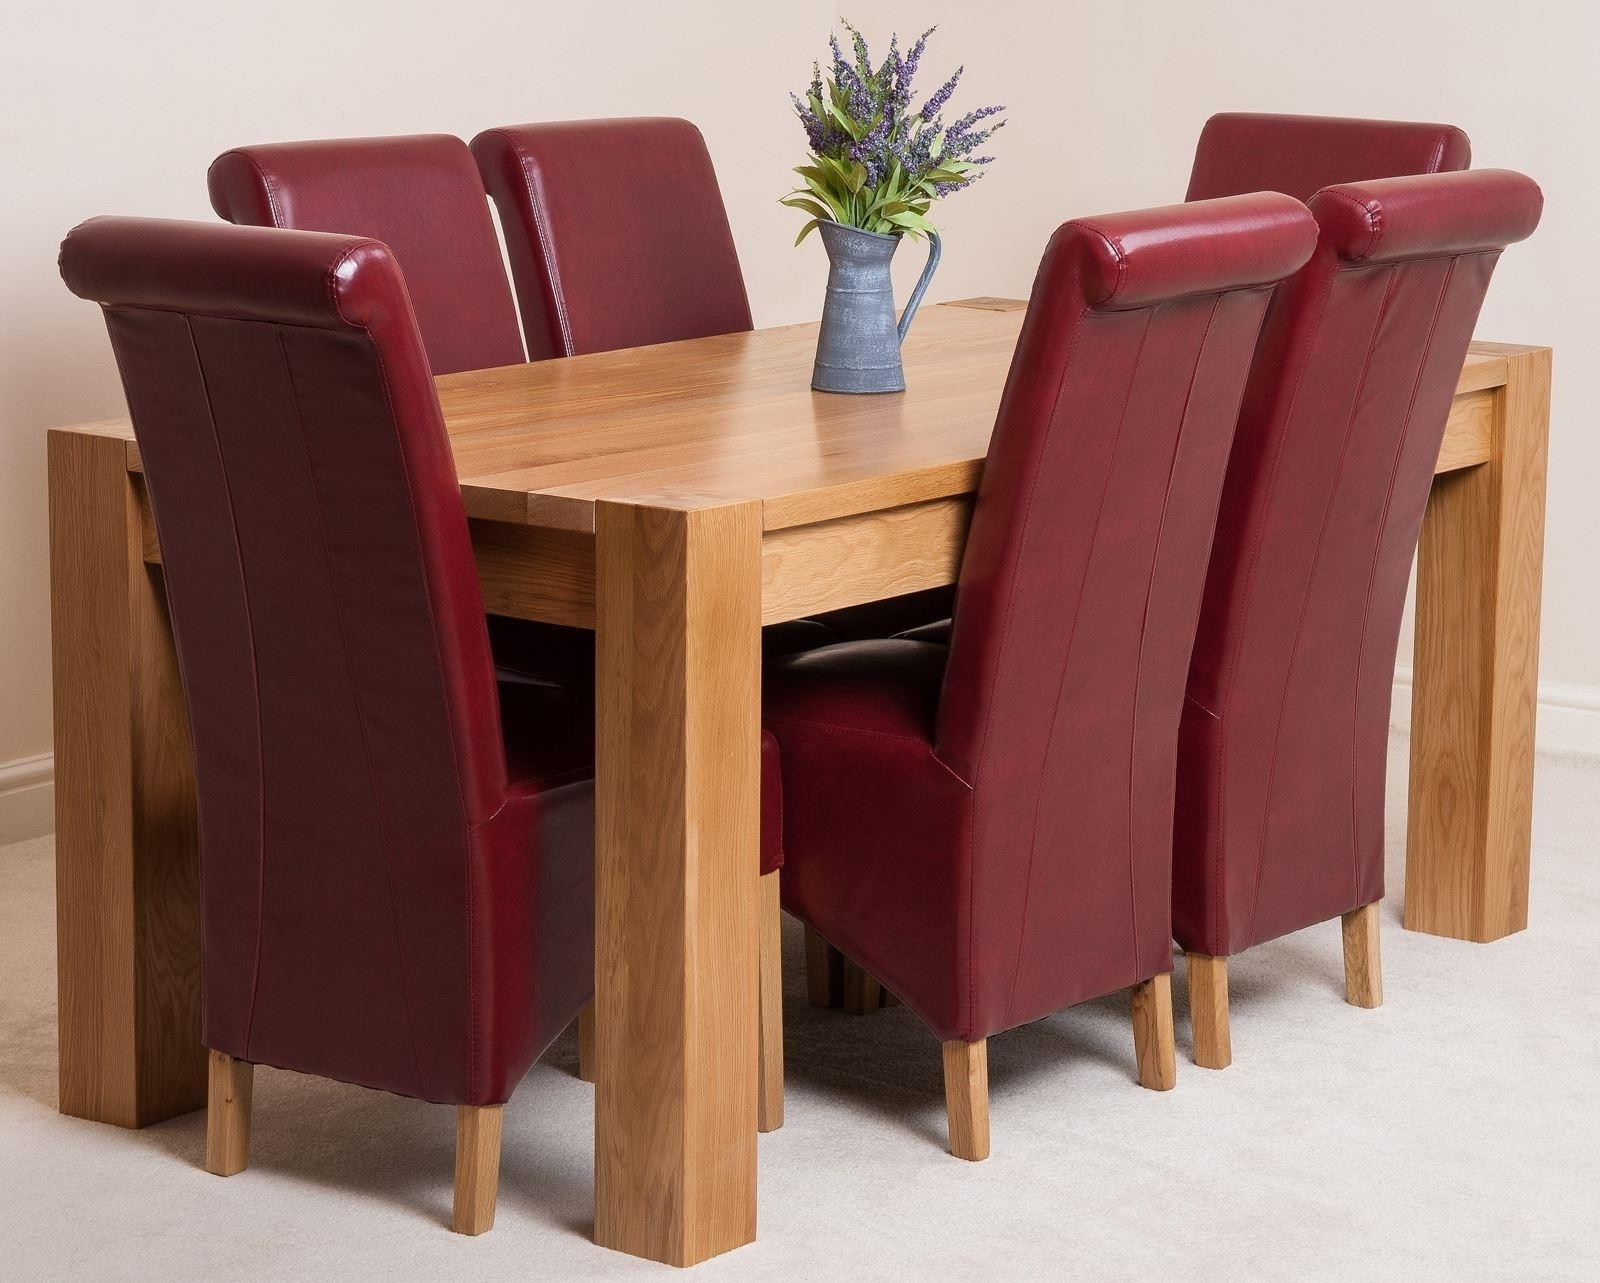 Kuba Solid Oak 180Cm Dining Table With 6 Montana Dining Chairs Inside Latest Oak Leather Dining Chairs (View 4 of 25)